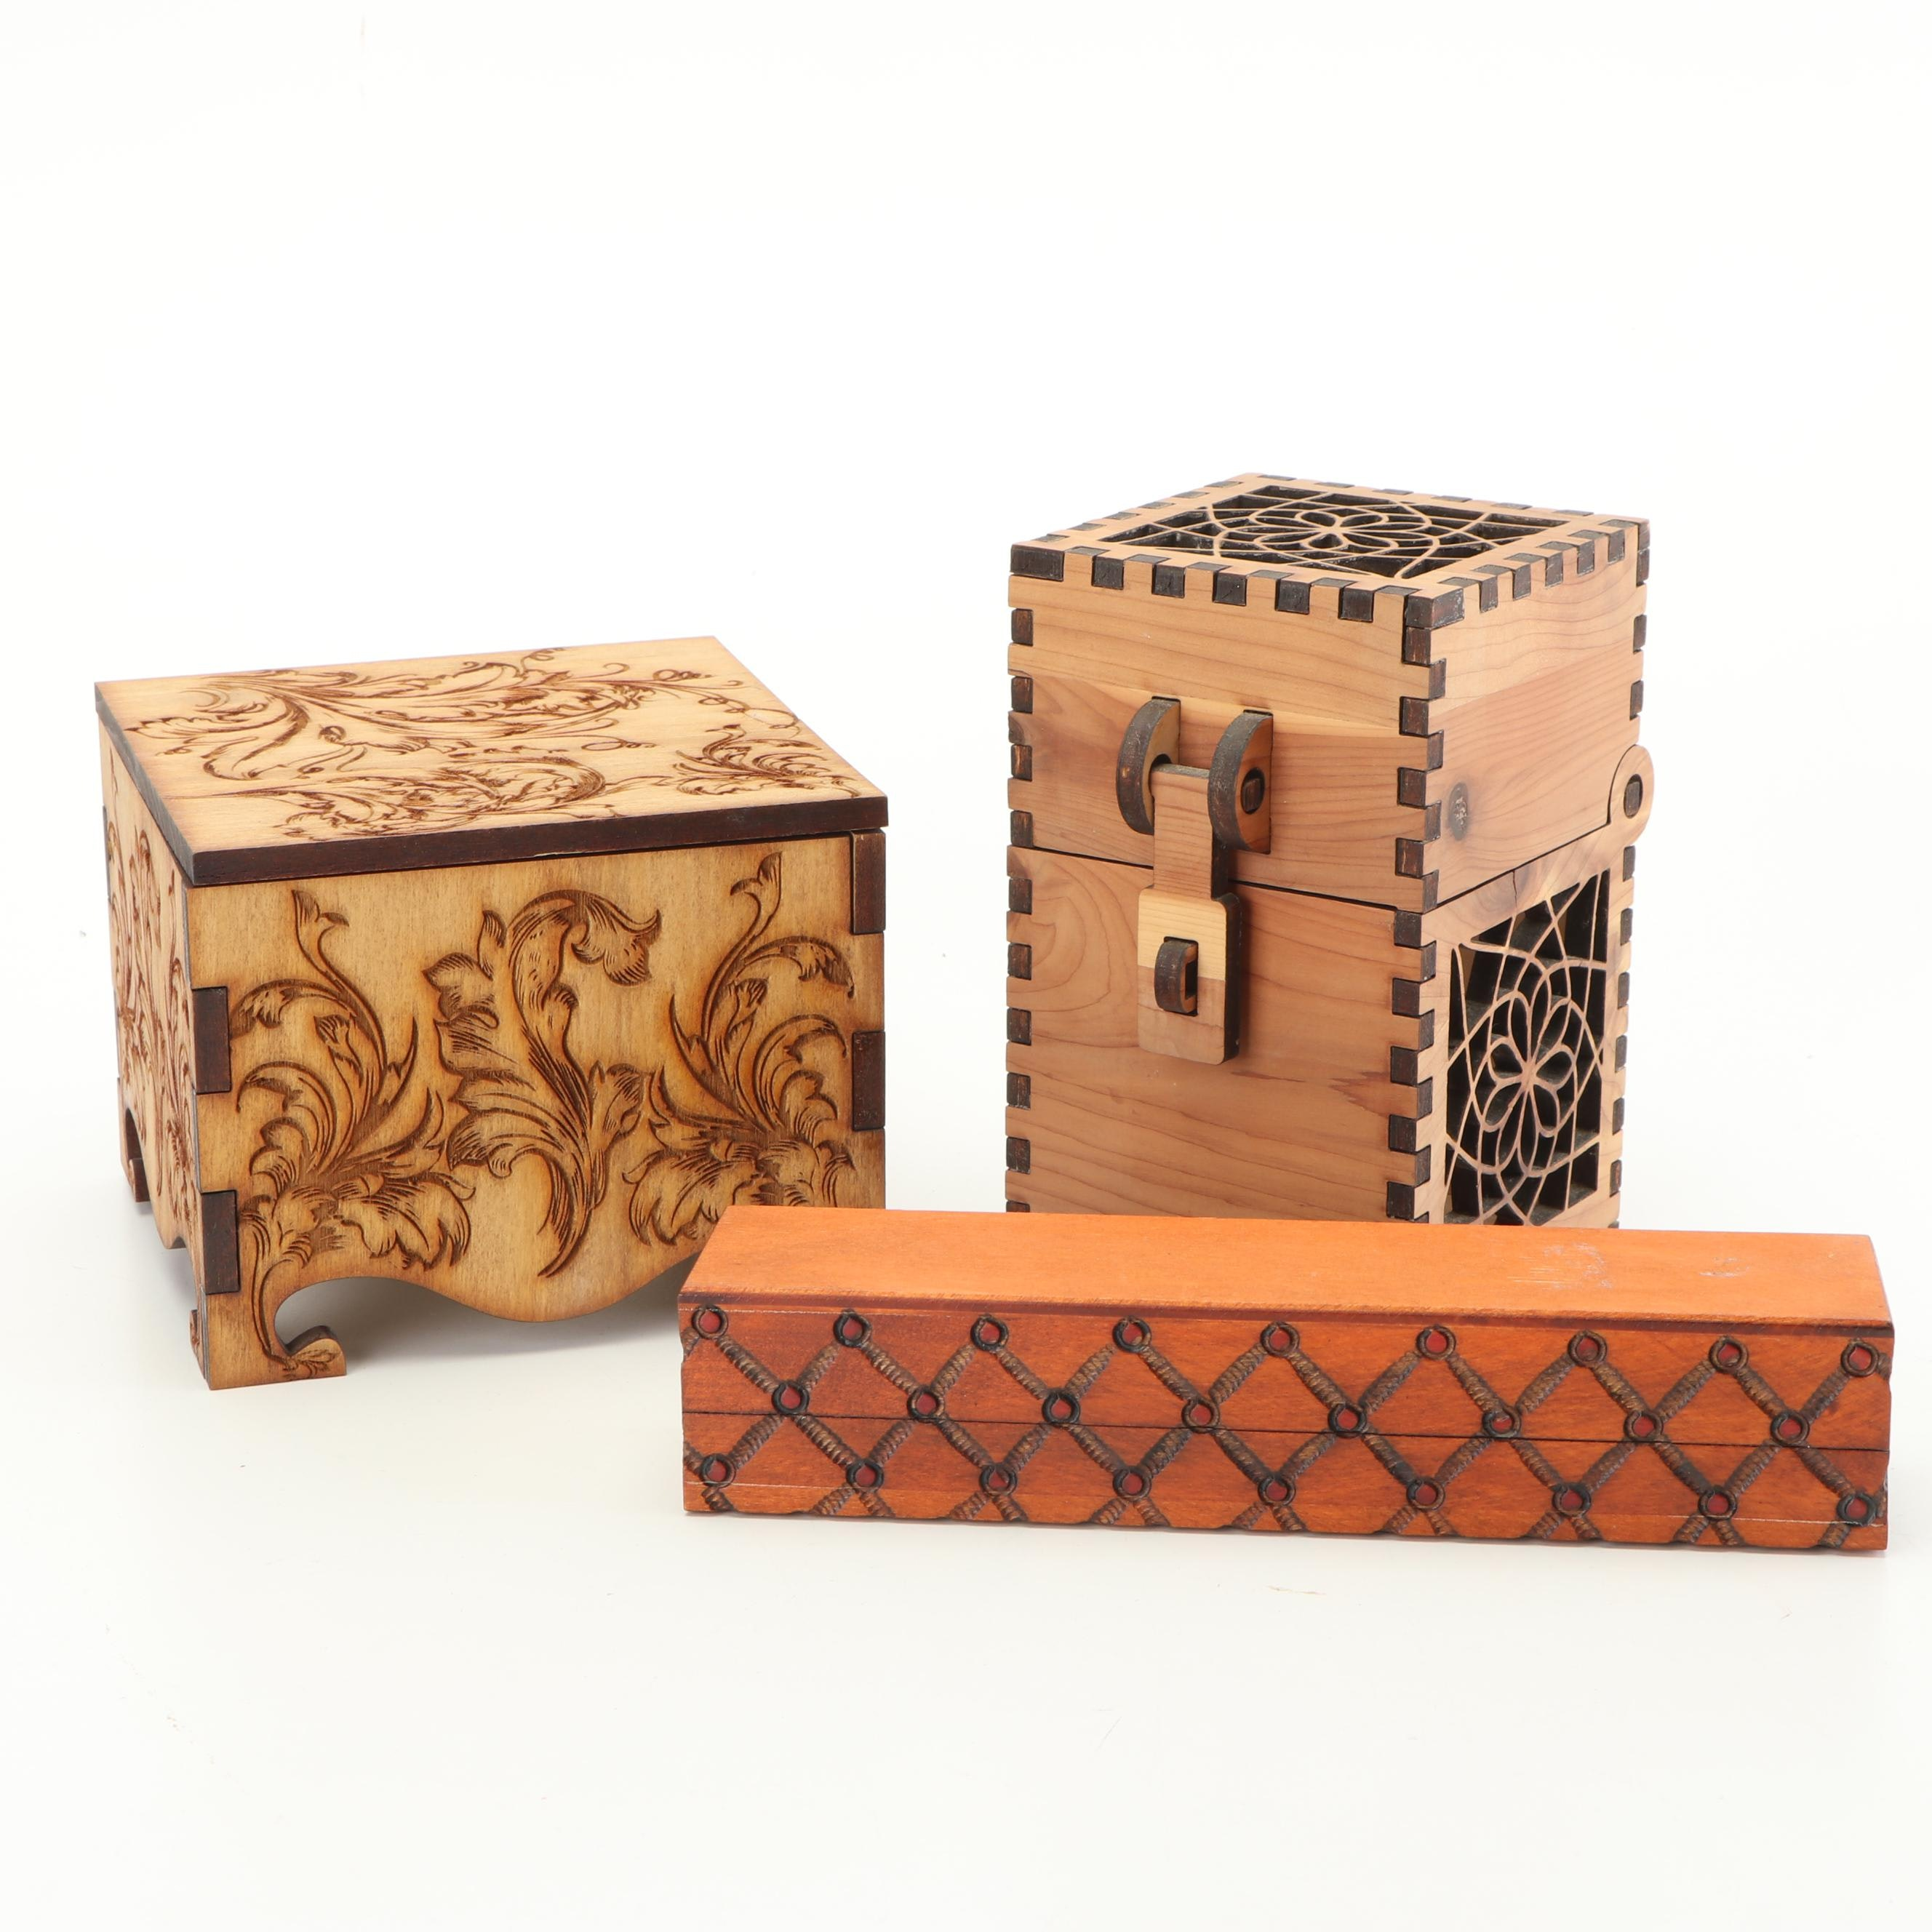 Decorative Carved and Laser Cut Wood Boxes